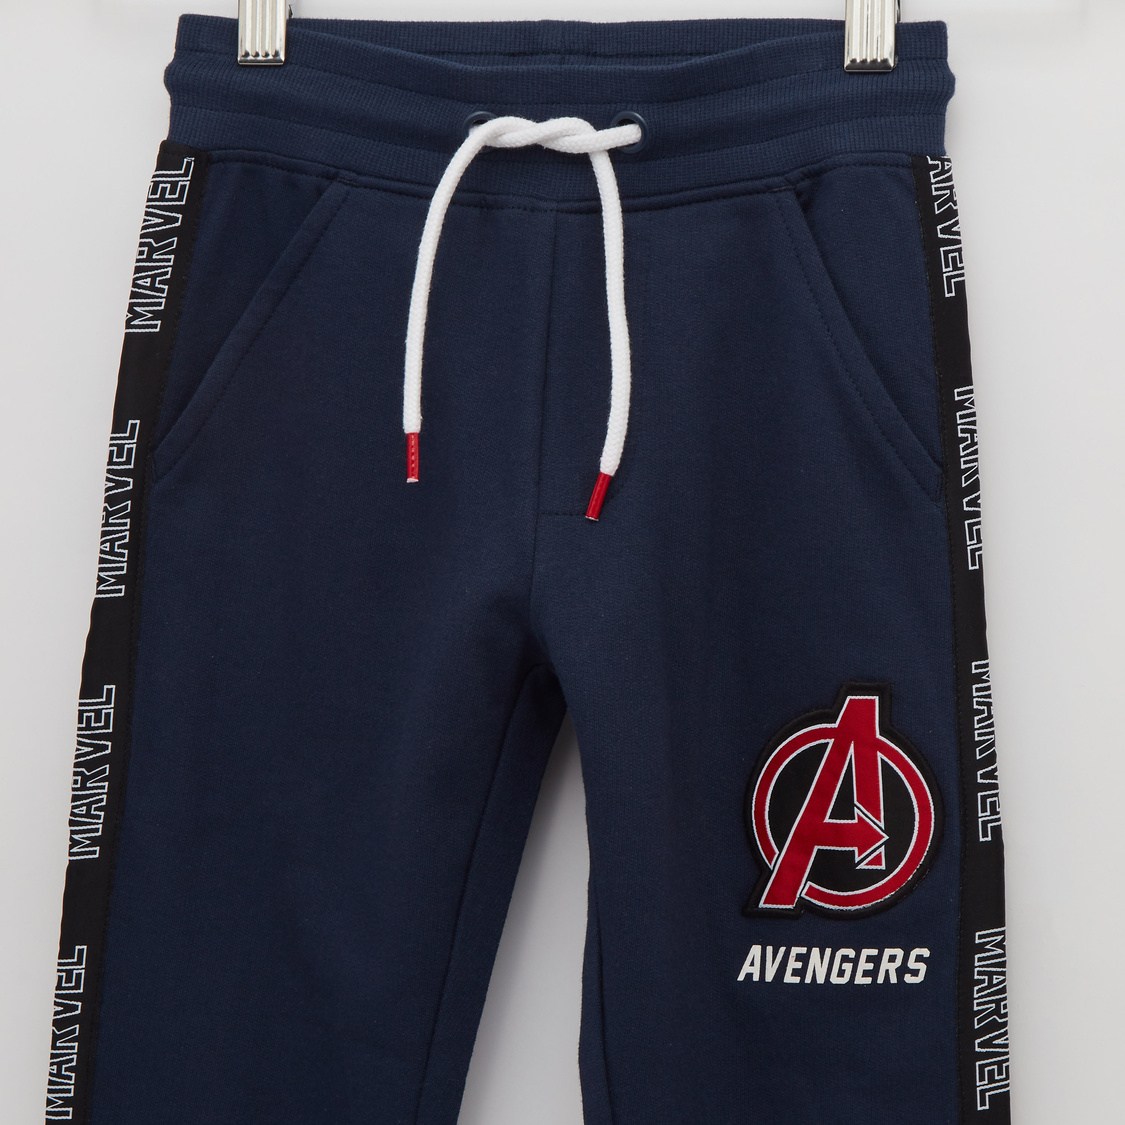 Tape Detail Avengers Print Joggers with Cuffs and Drawstring Closure